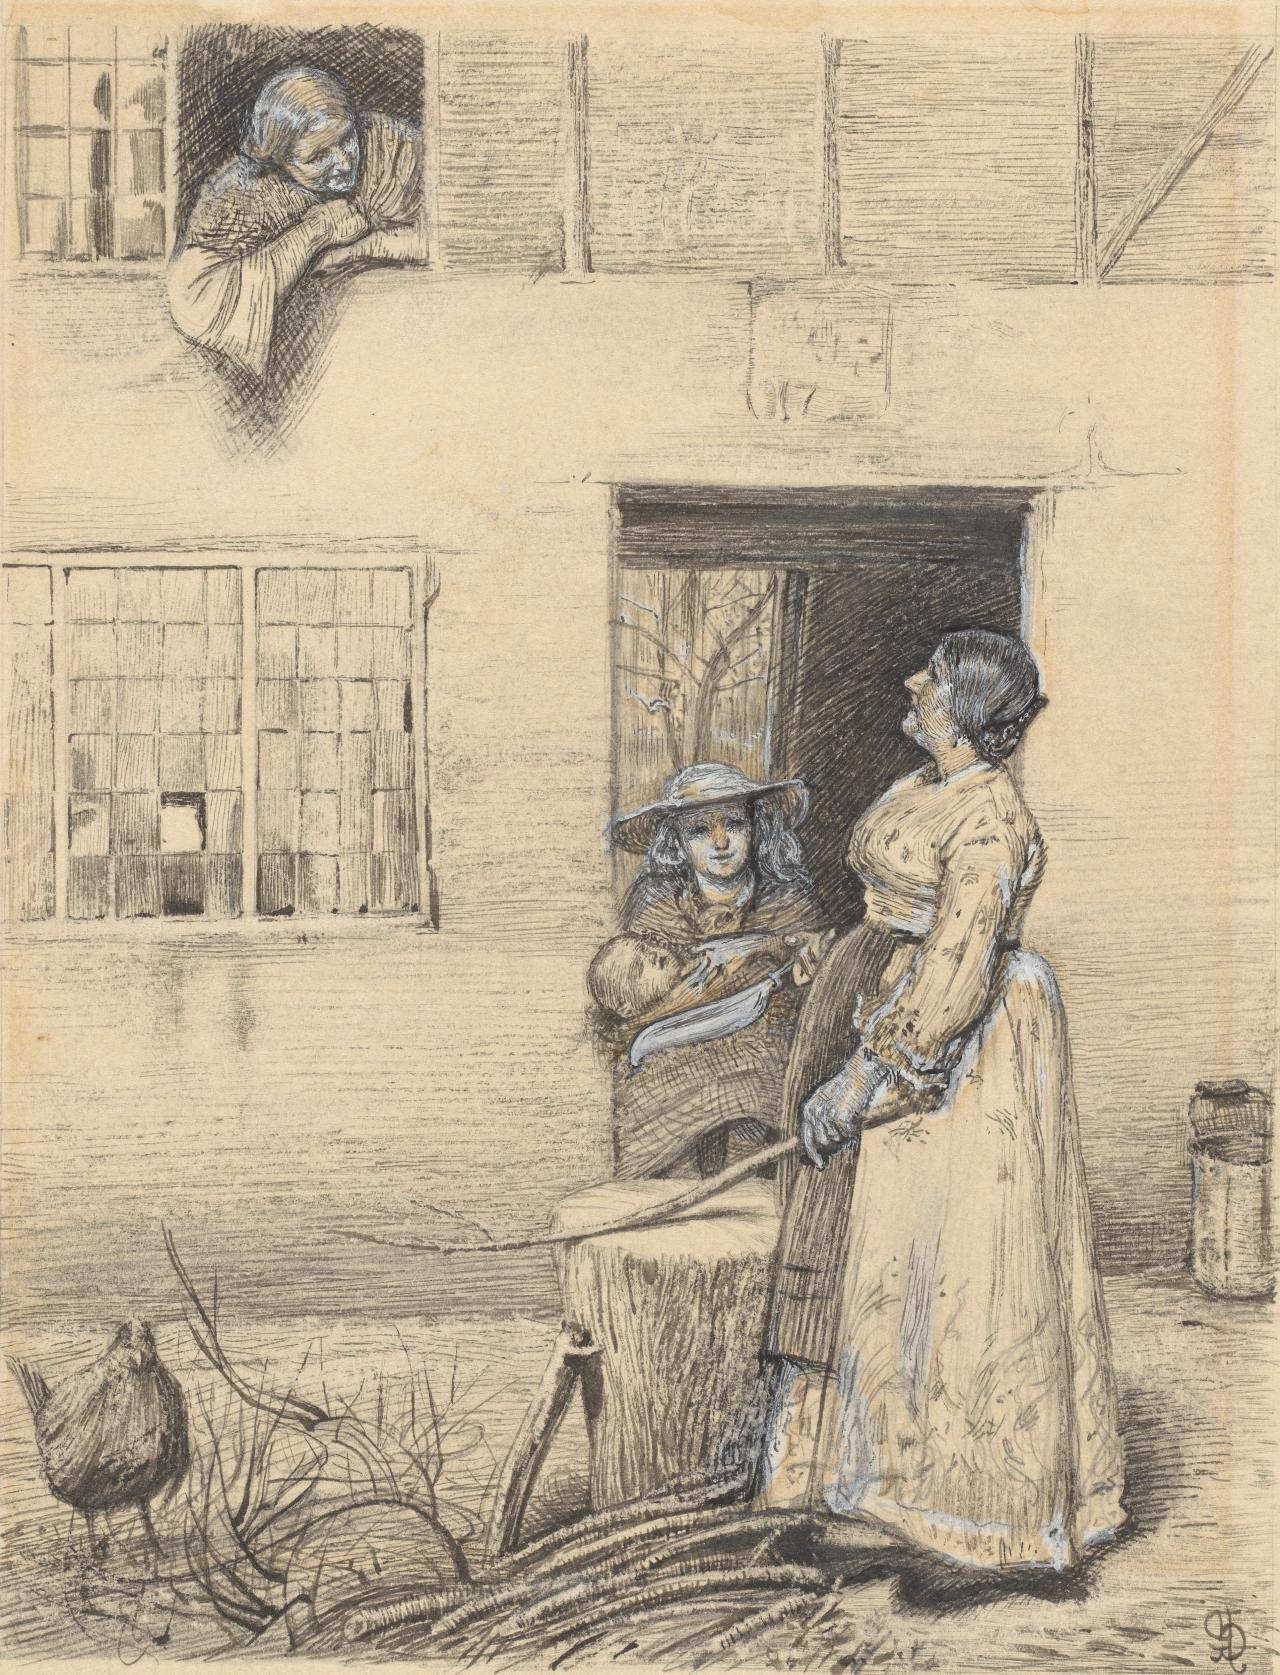 Illustration to a poem by Robert Buchanan